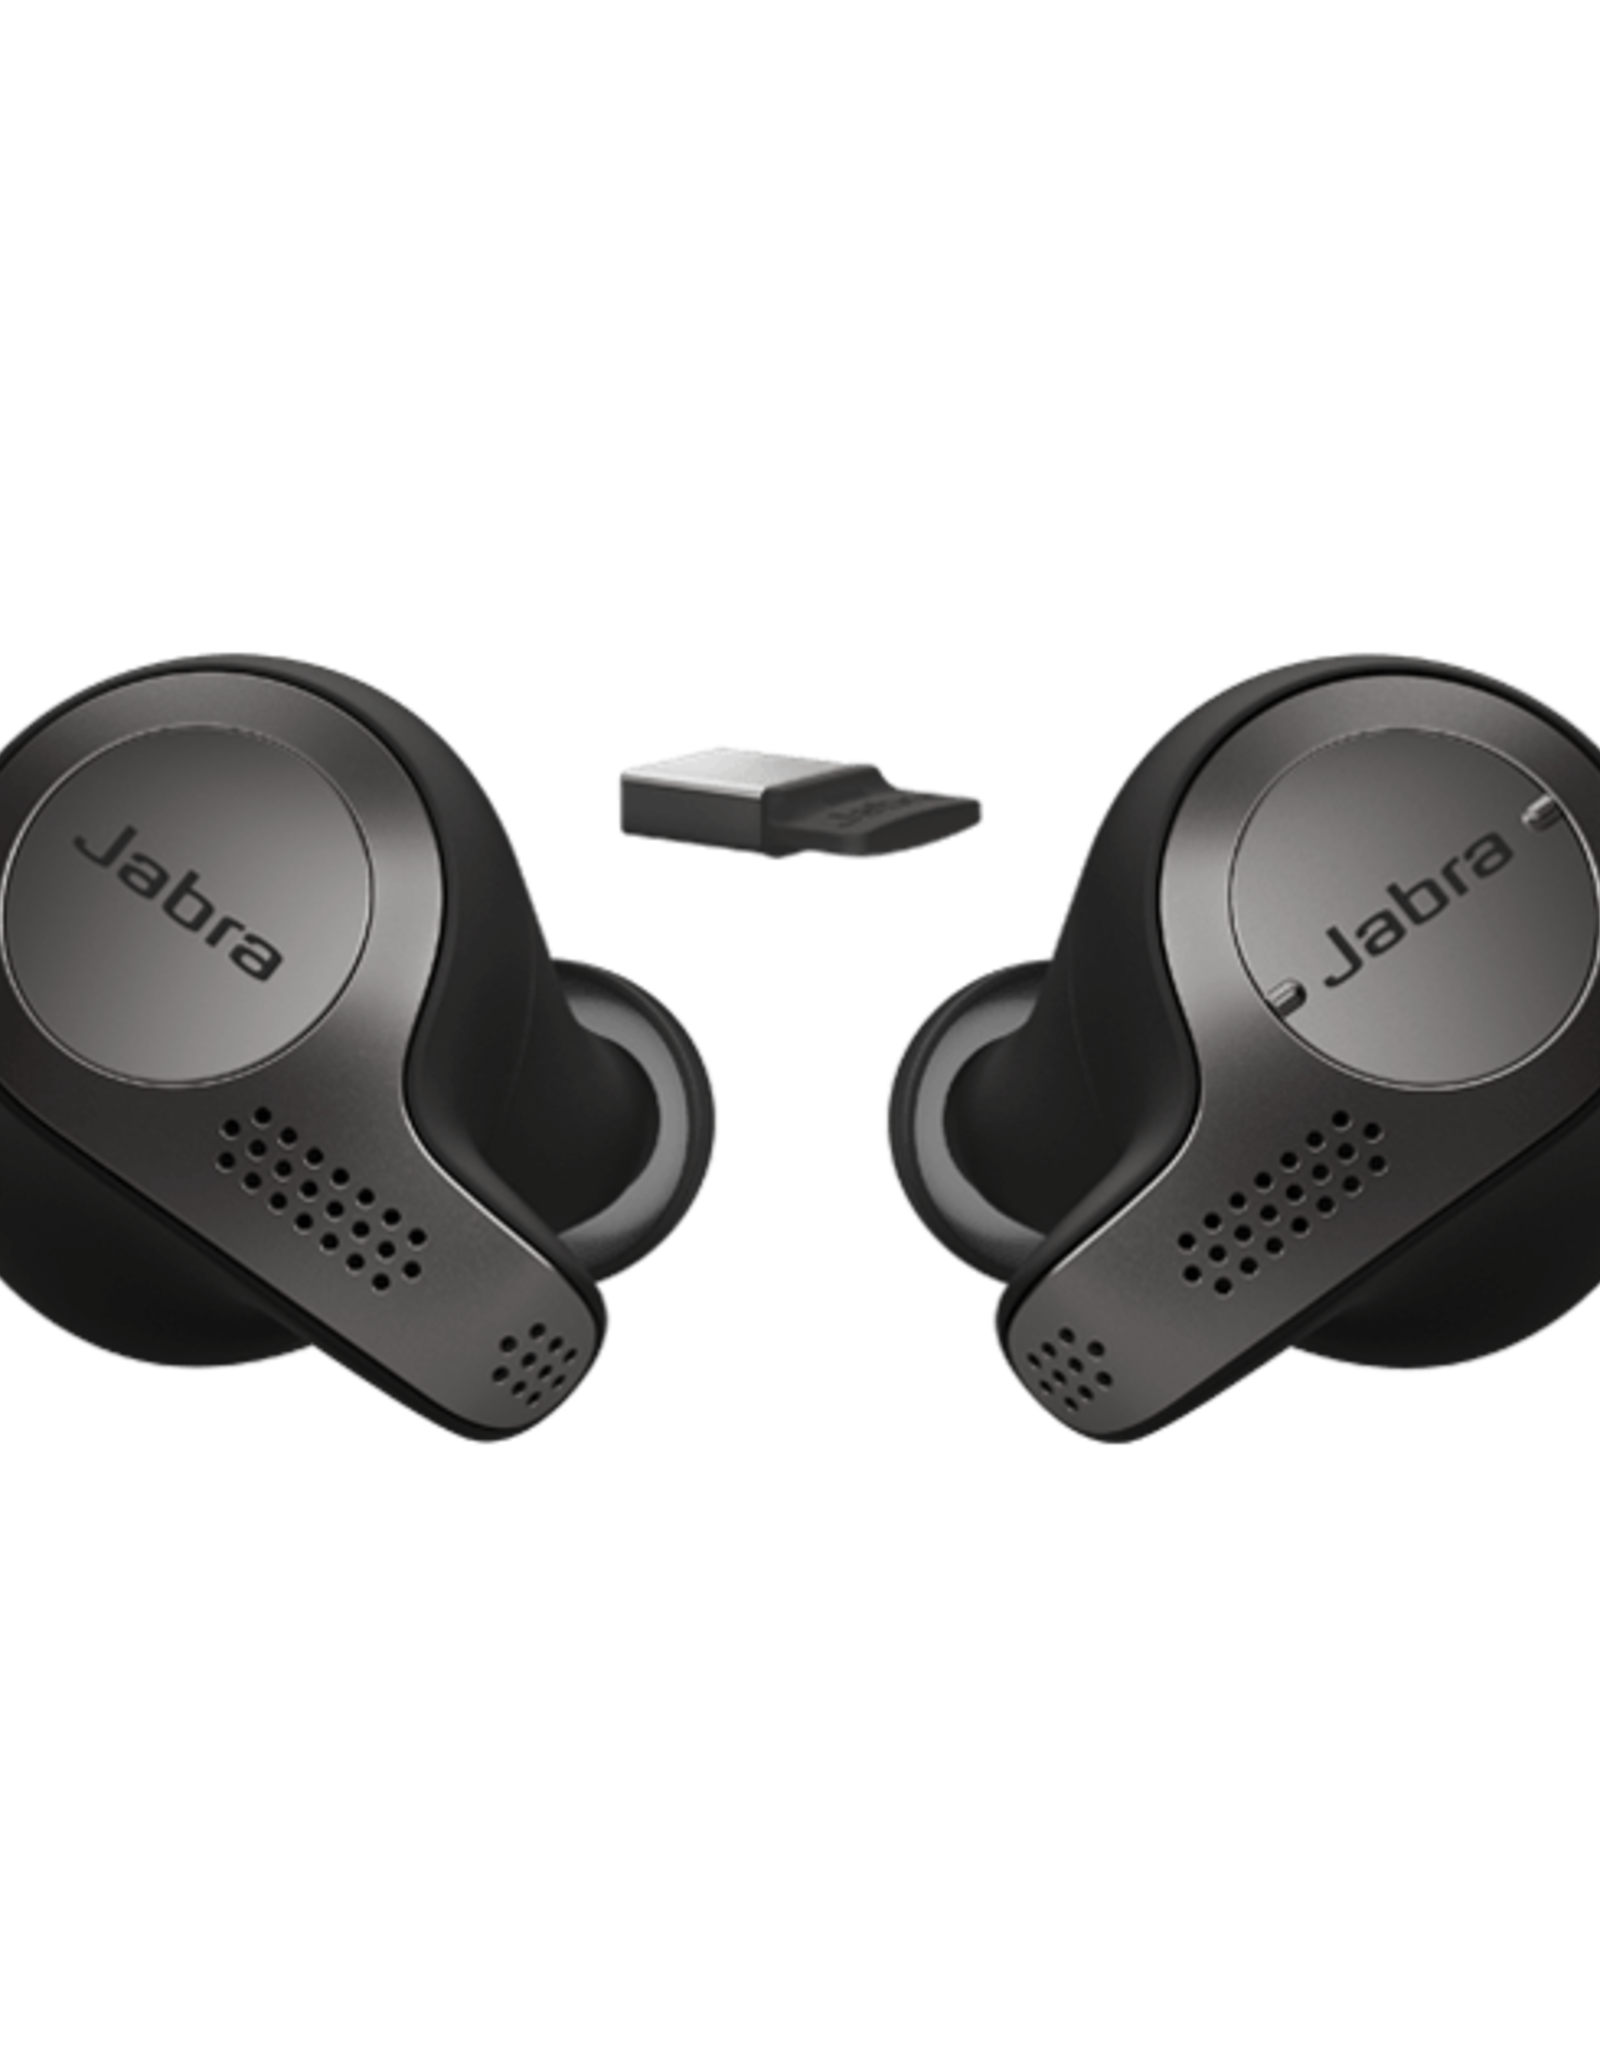 Jabra SO Jabra | Gn Us Jabra EVOLVE 65t MS - Stereo - Wireless - Bluetooth - Earbud - Binaural - In-ear | 6598-832-109